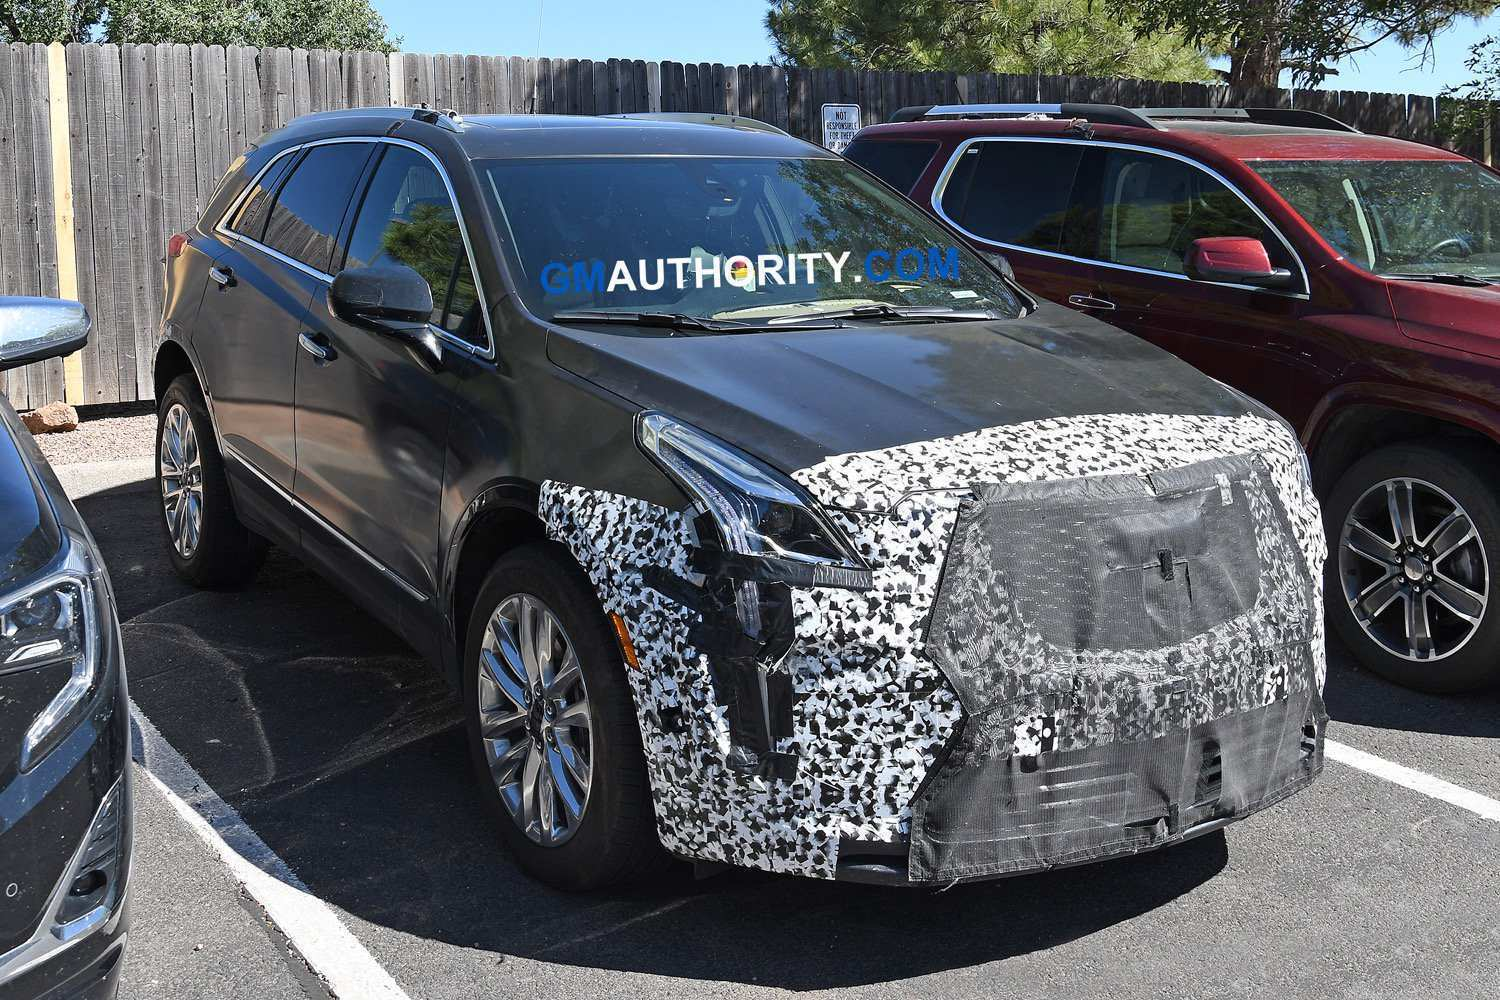 47 All New 2020 Spy Shots Cadillac Xt5 New Review